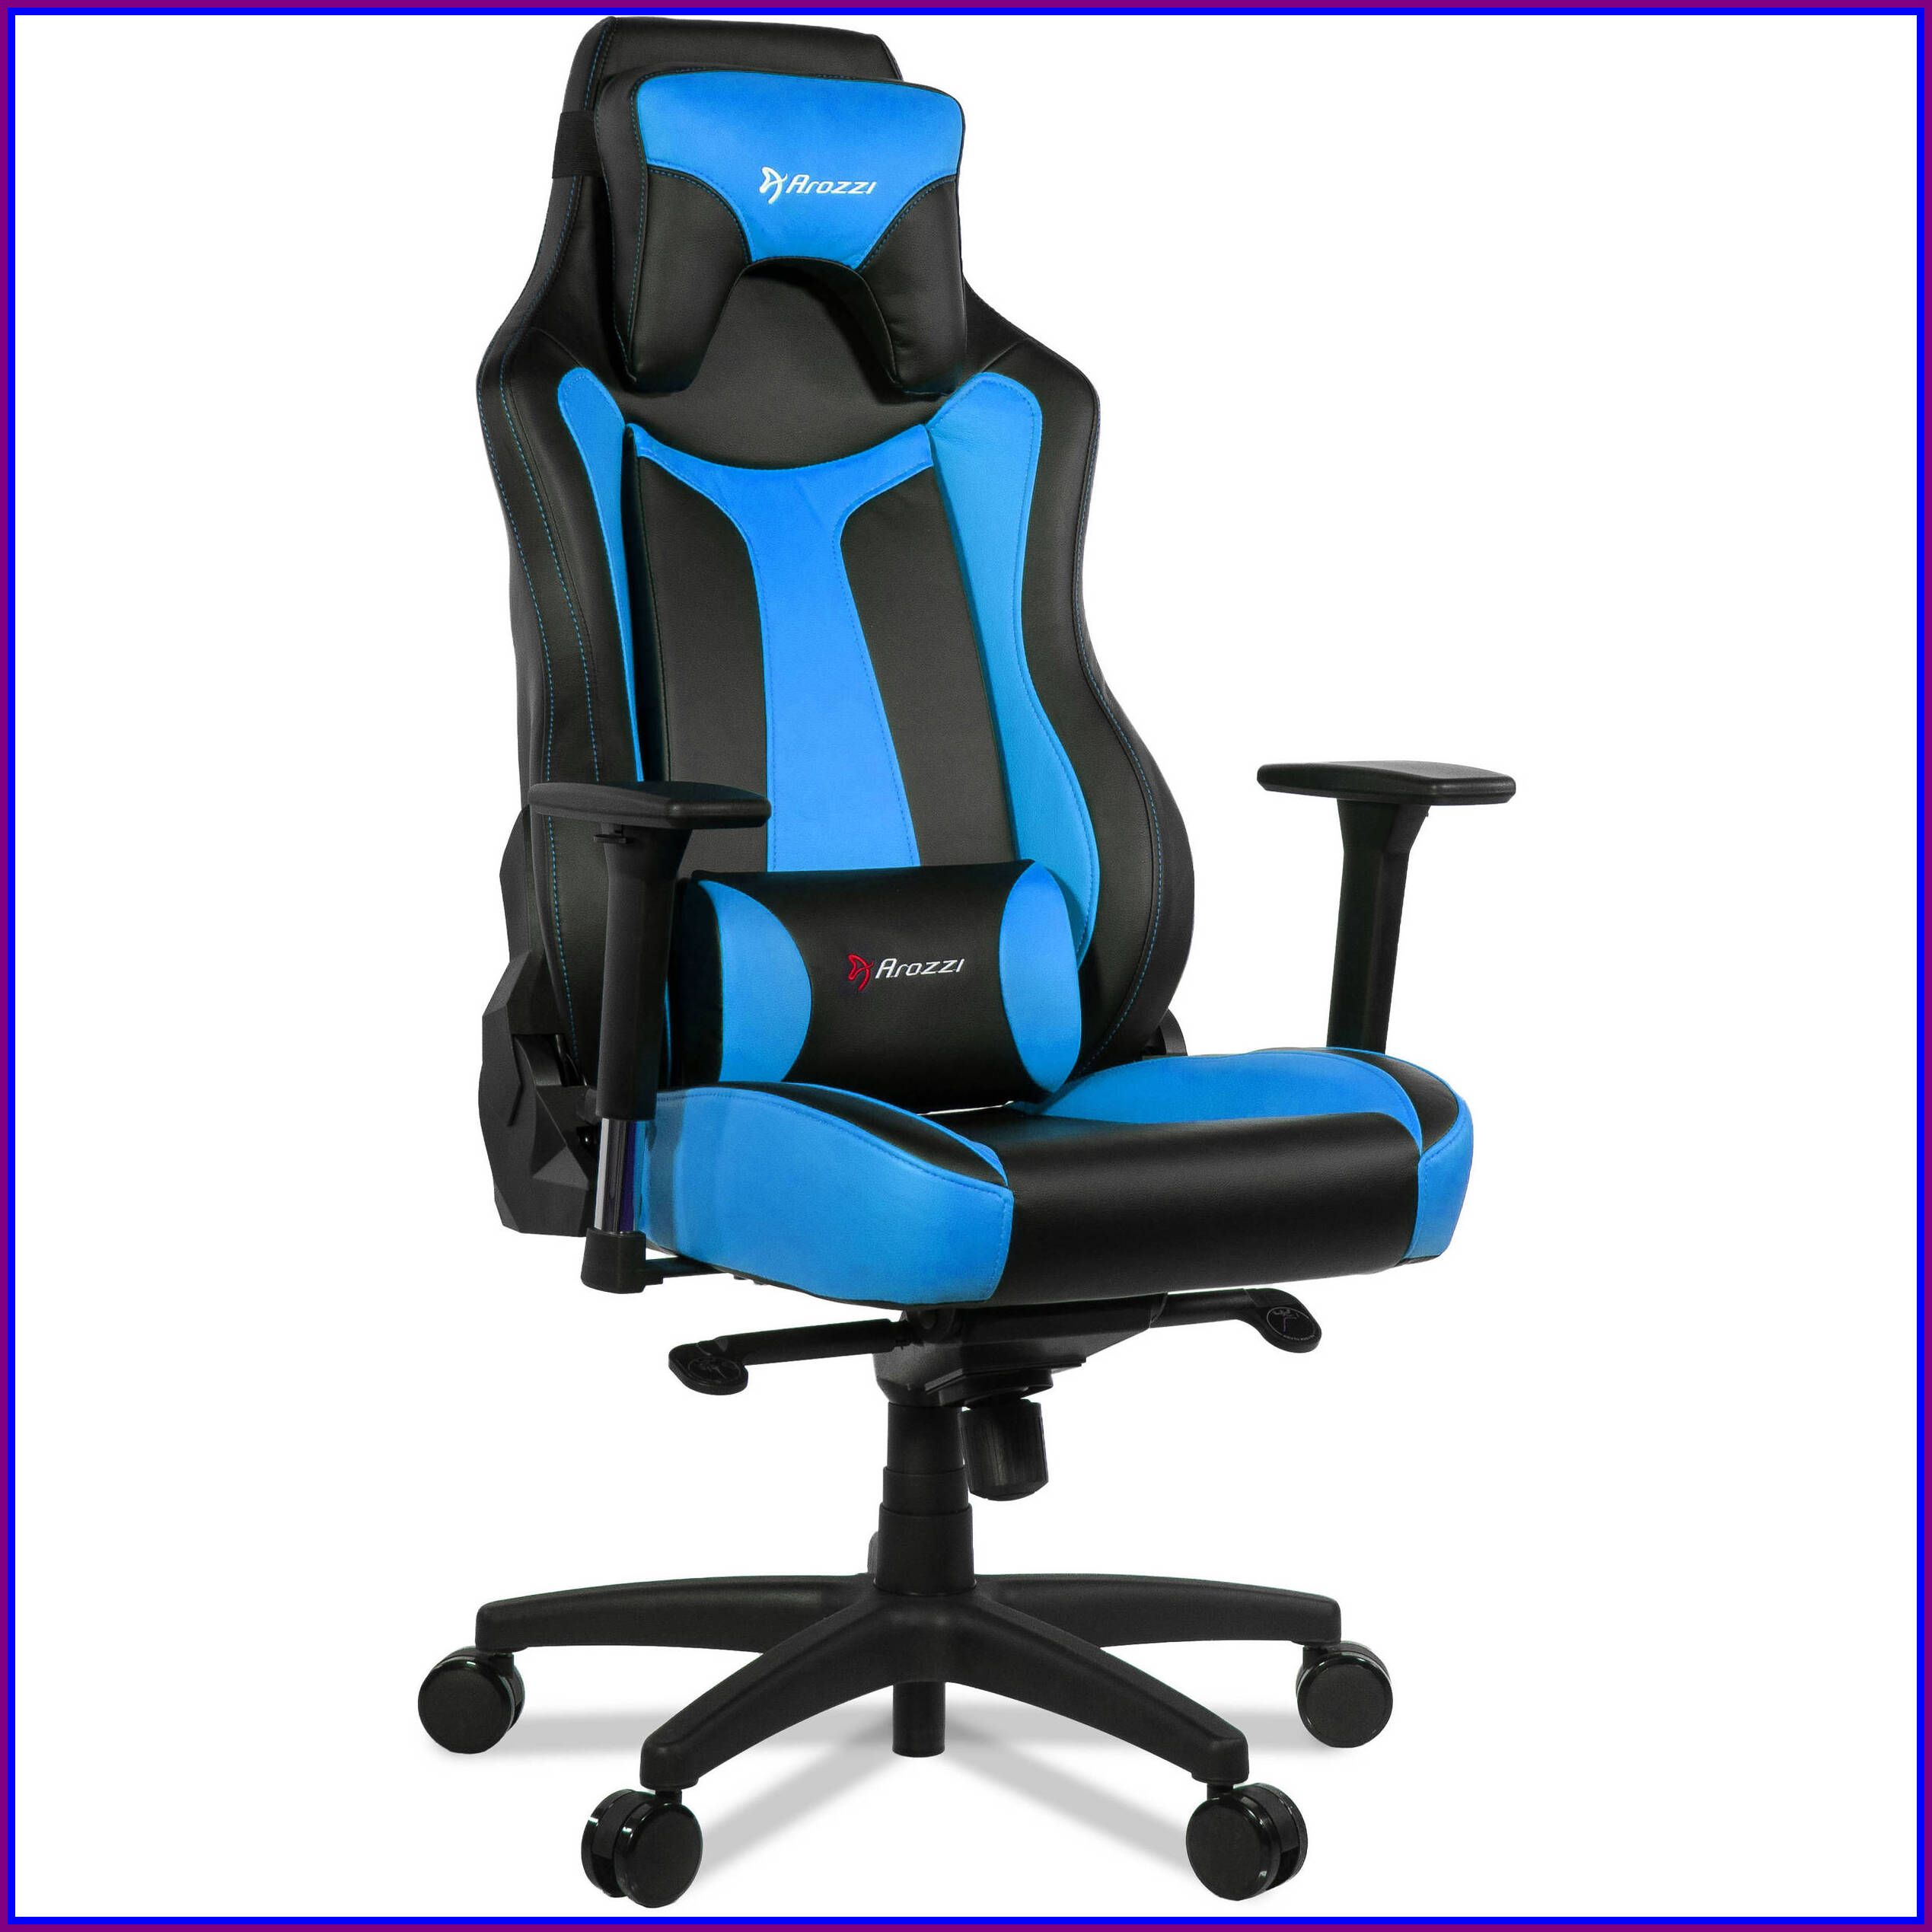 47 Reference Of Gaming Chair Dxracer Blue In 2020 Gaming Chair Chair Blue Chair